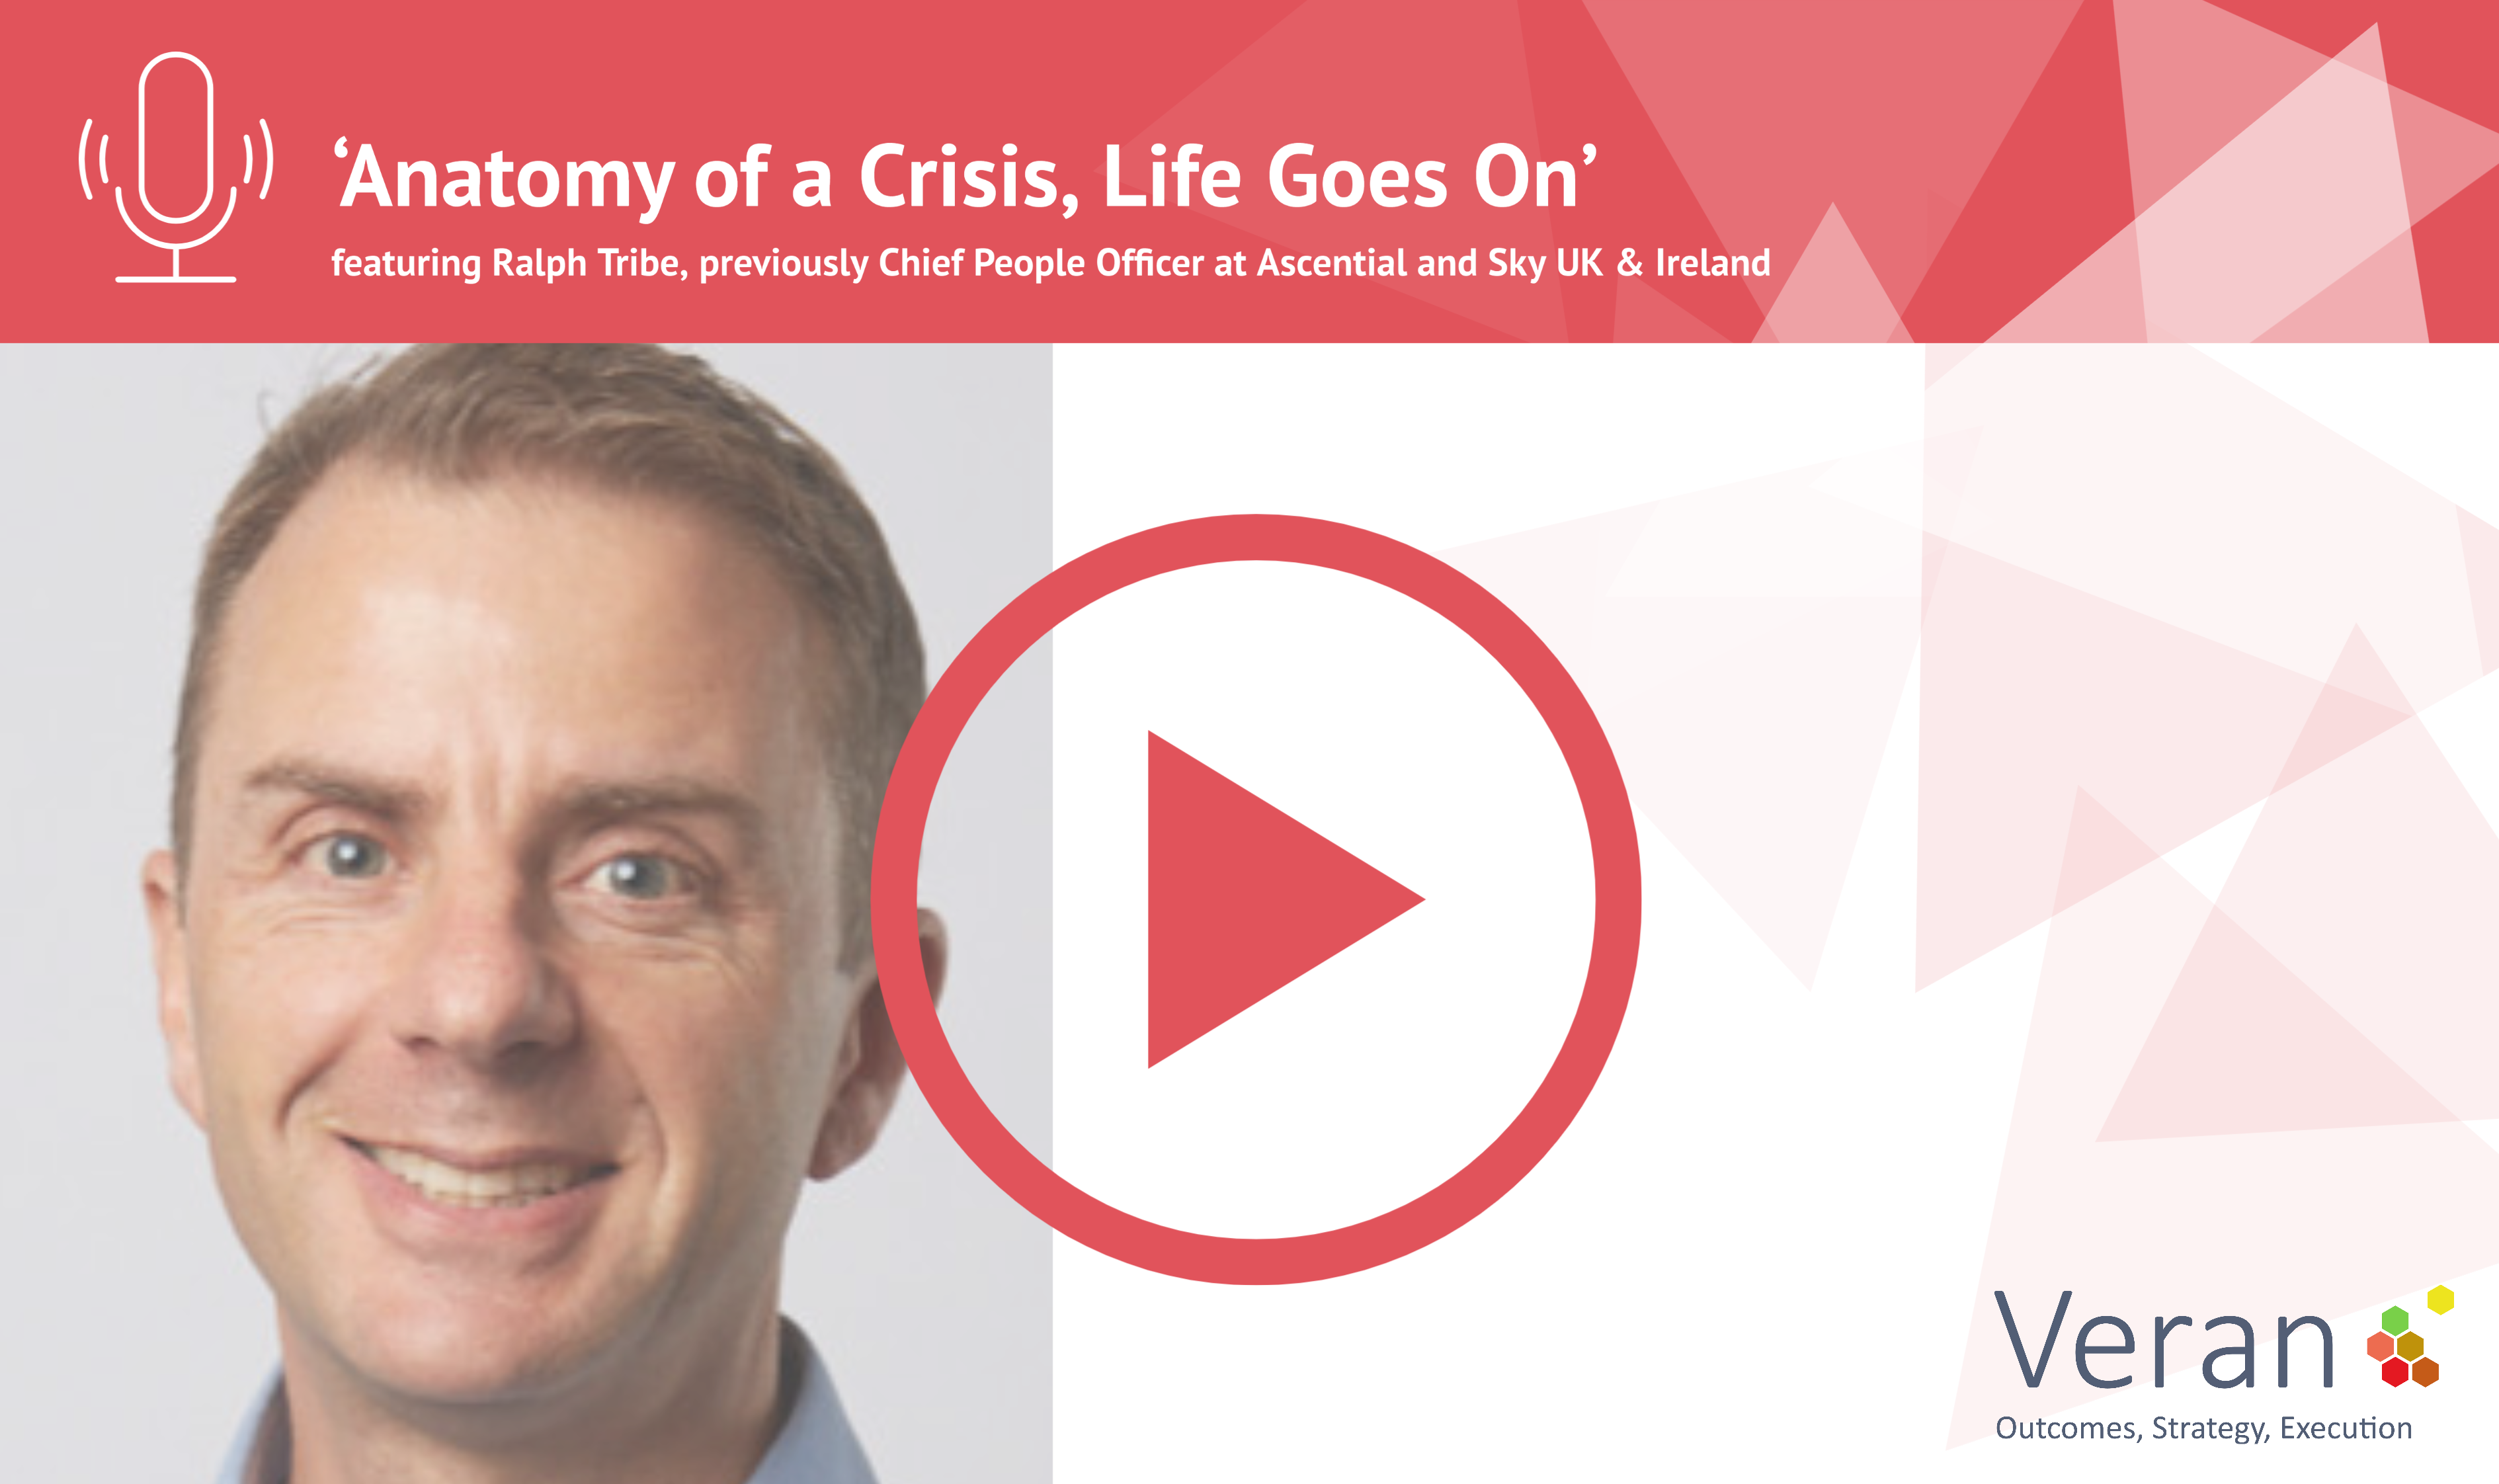 Anatomy of a Crisis, Life Goes On with Ralph Tribe